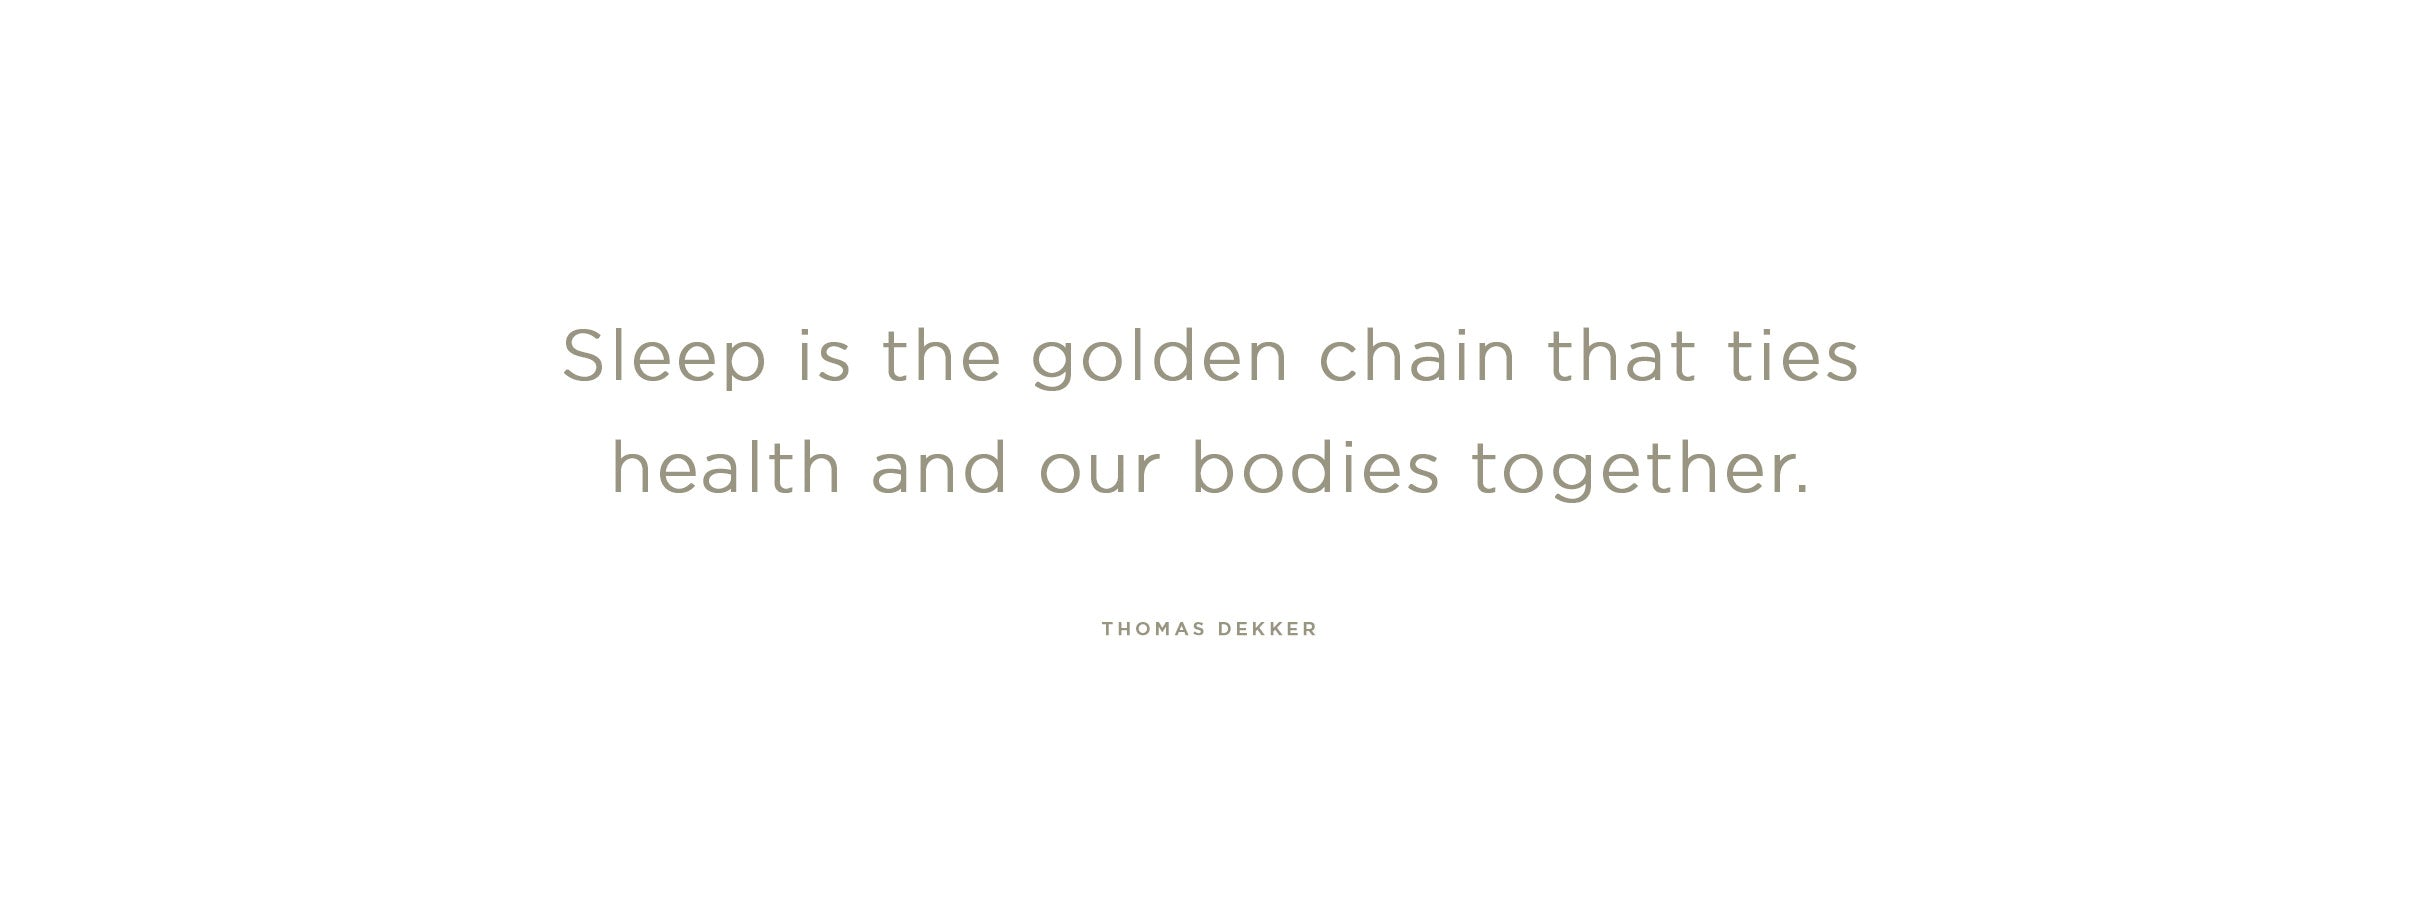 Quote 'Sleep is the golden chain that ties health and our bodies together'